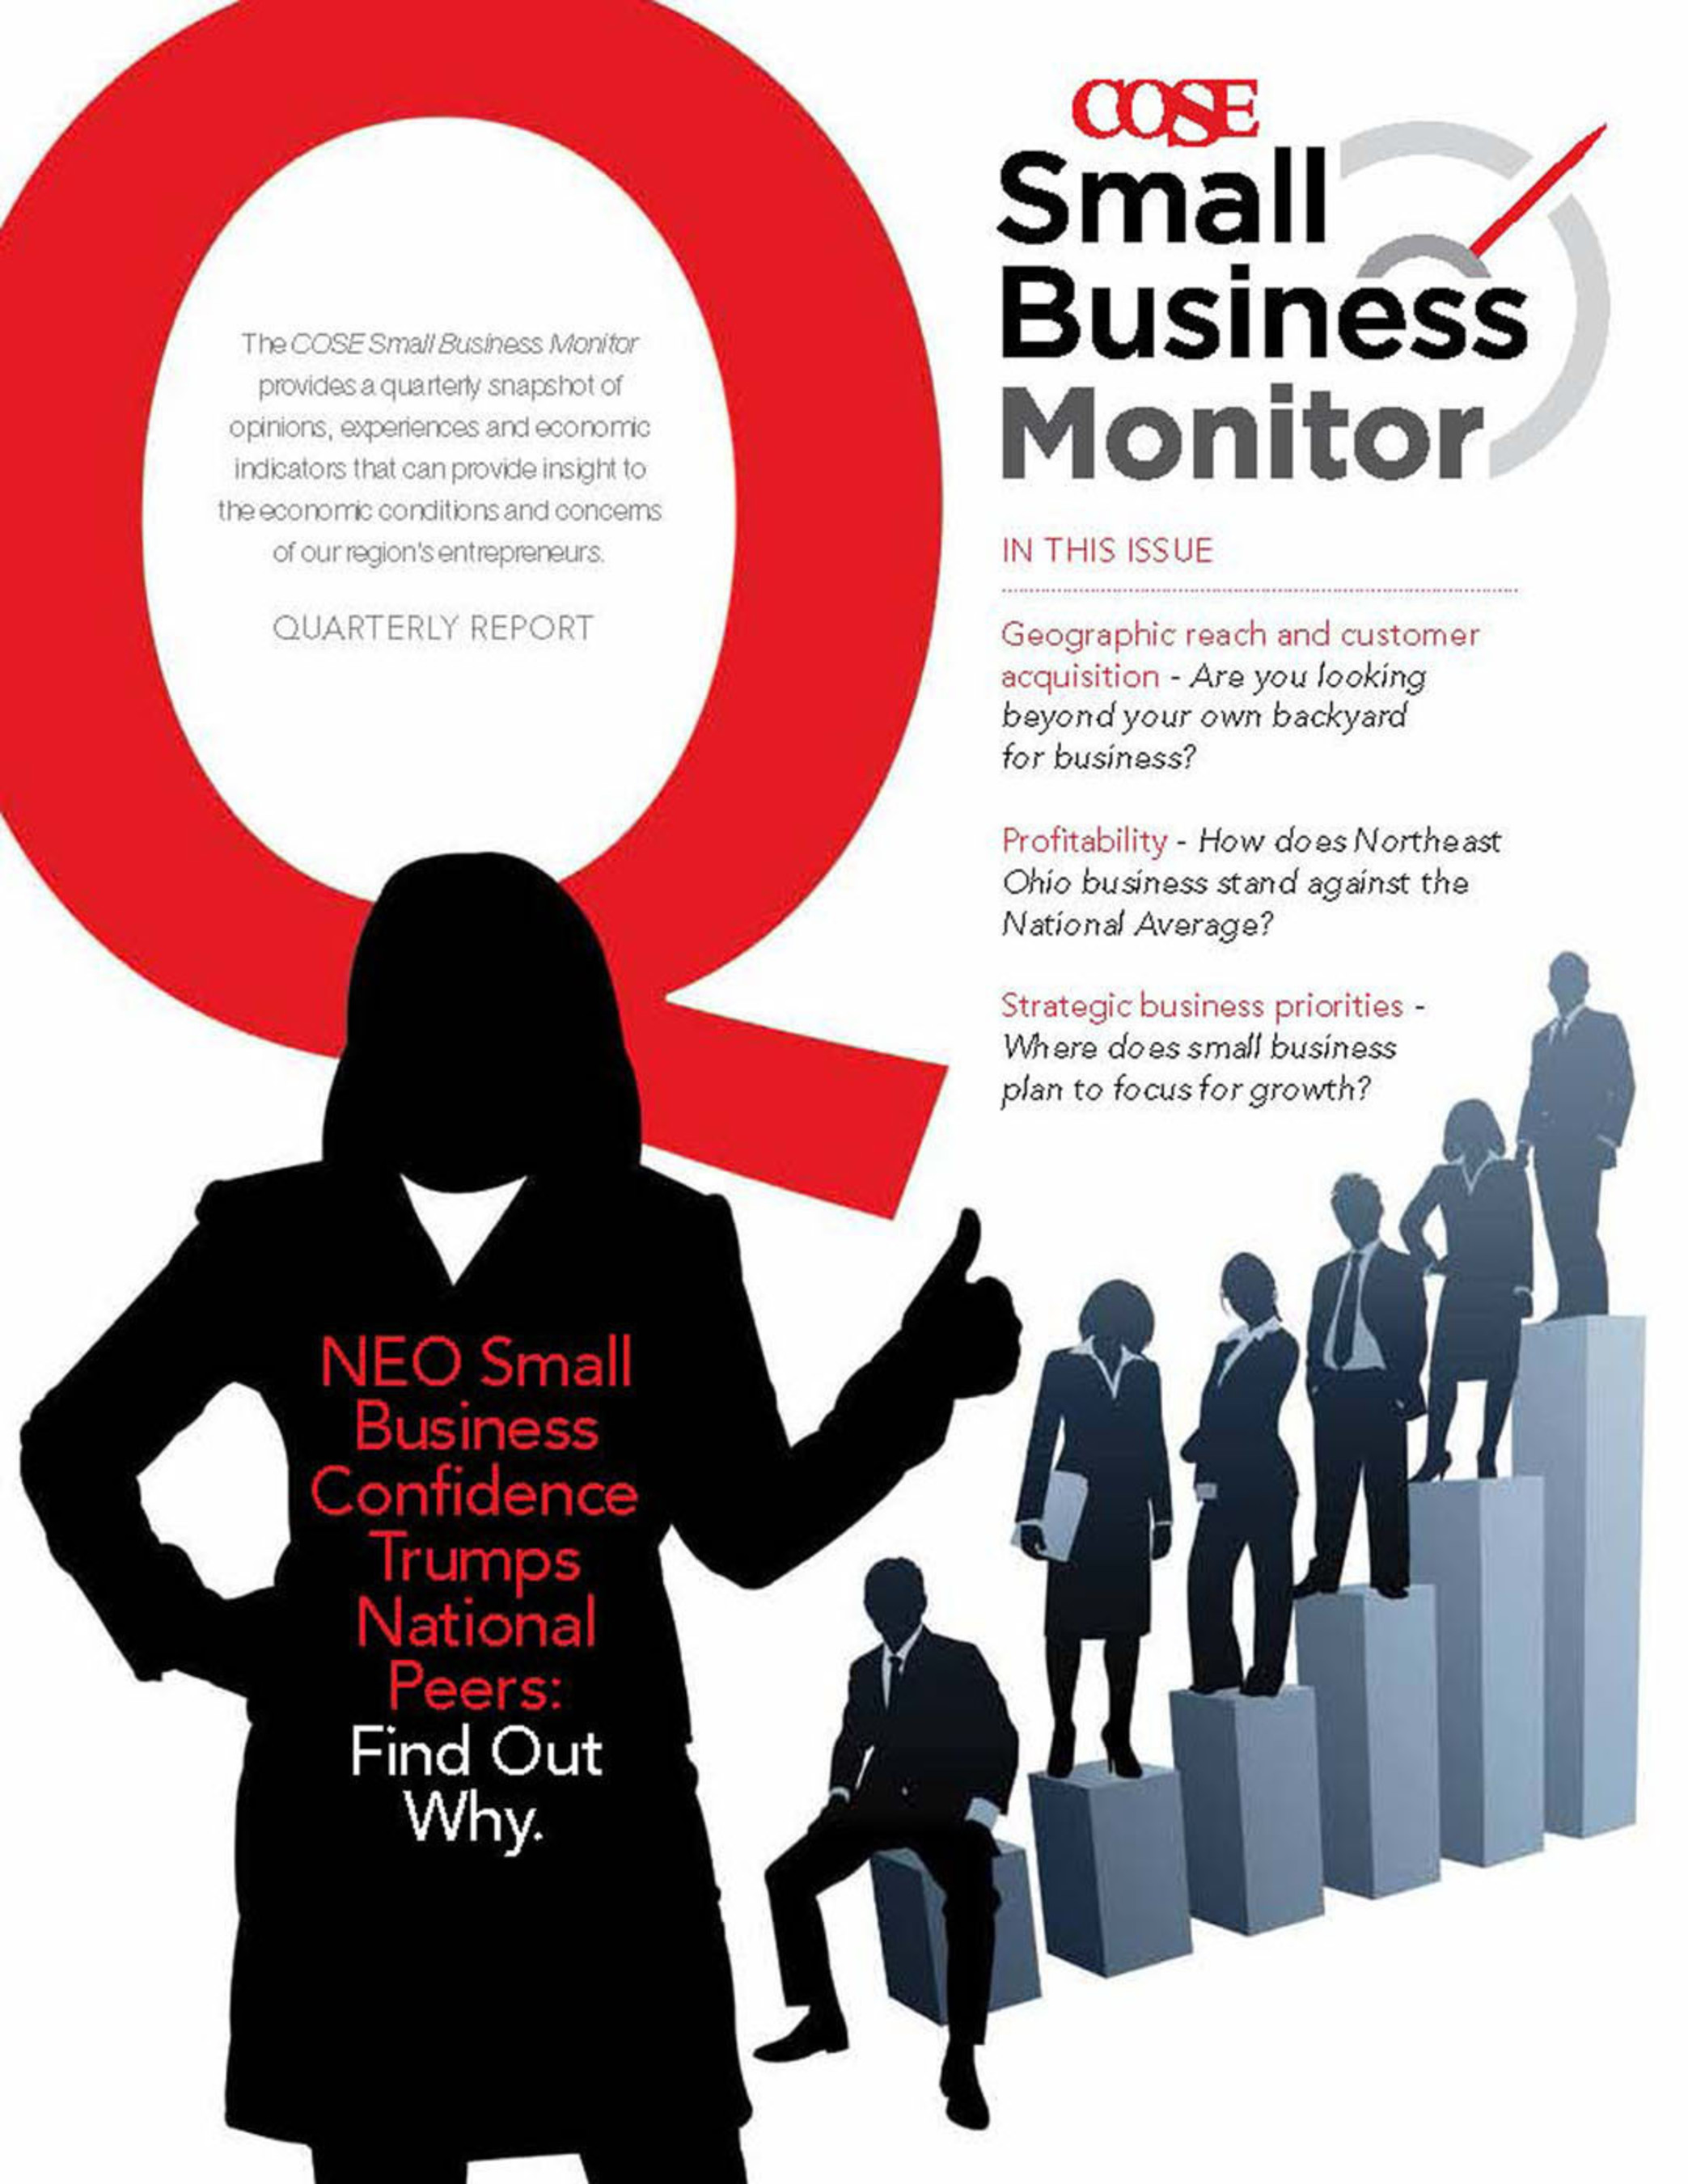 Northeast Ohio Small Business Confidence Trumps National Peers